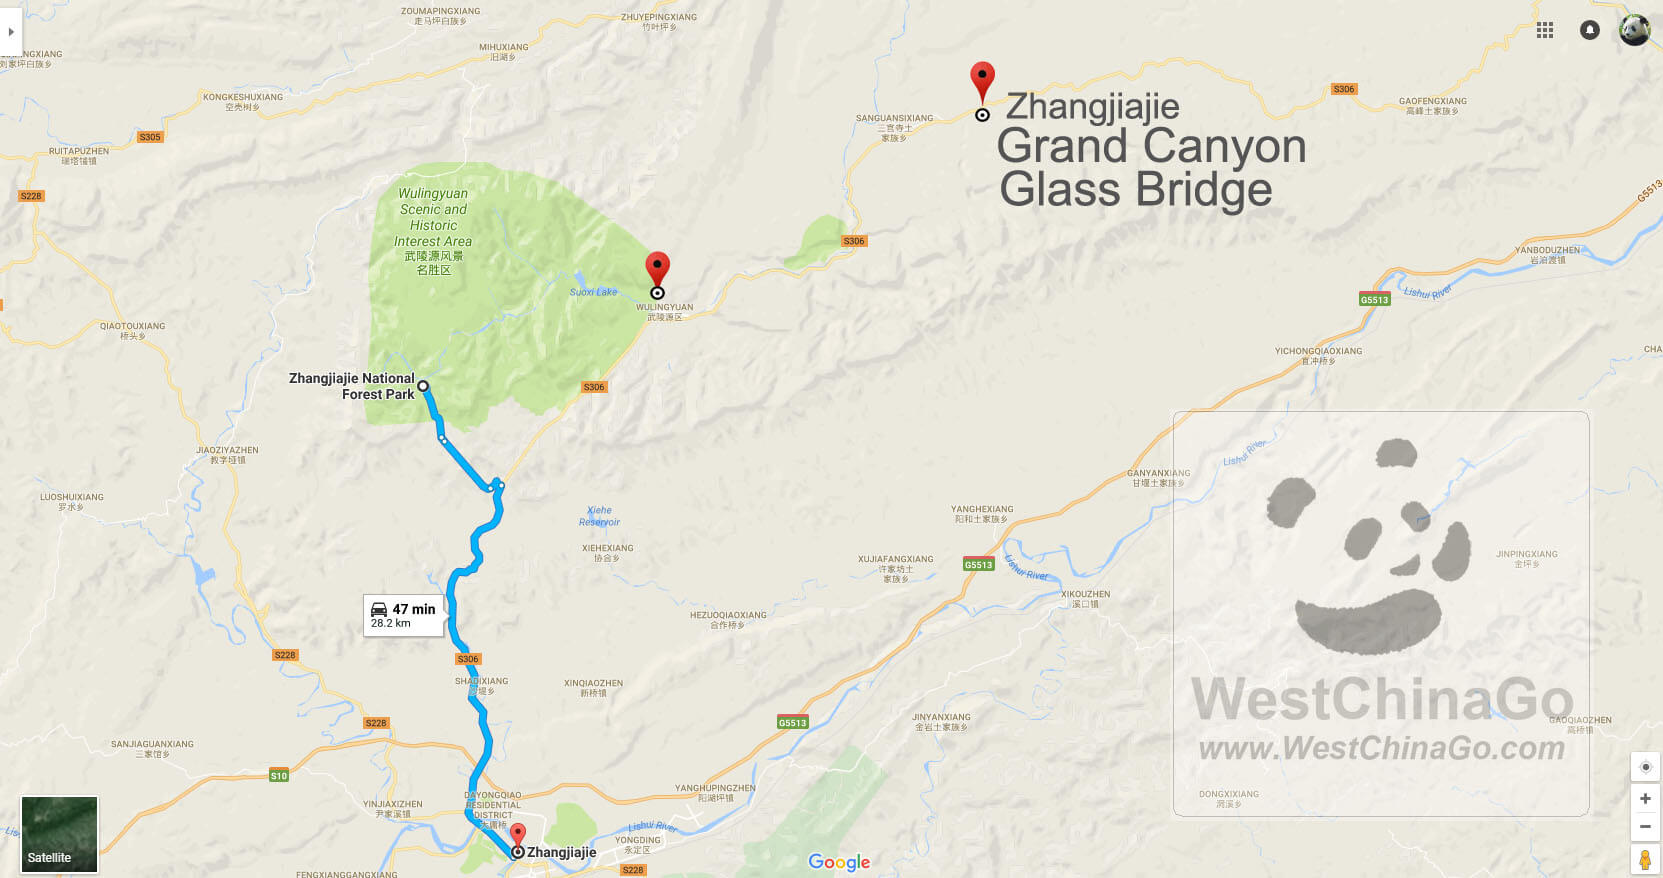 zhangjiajie tour map